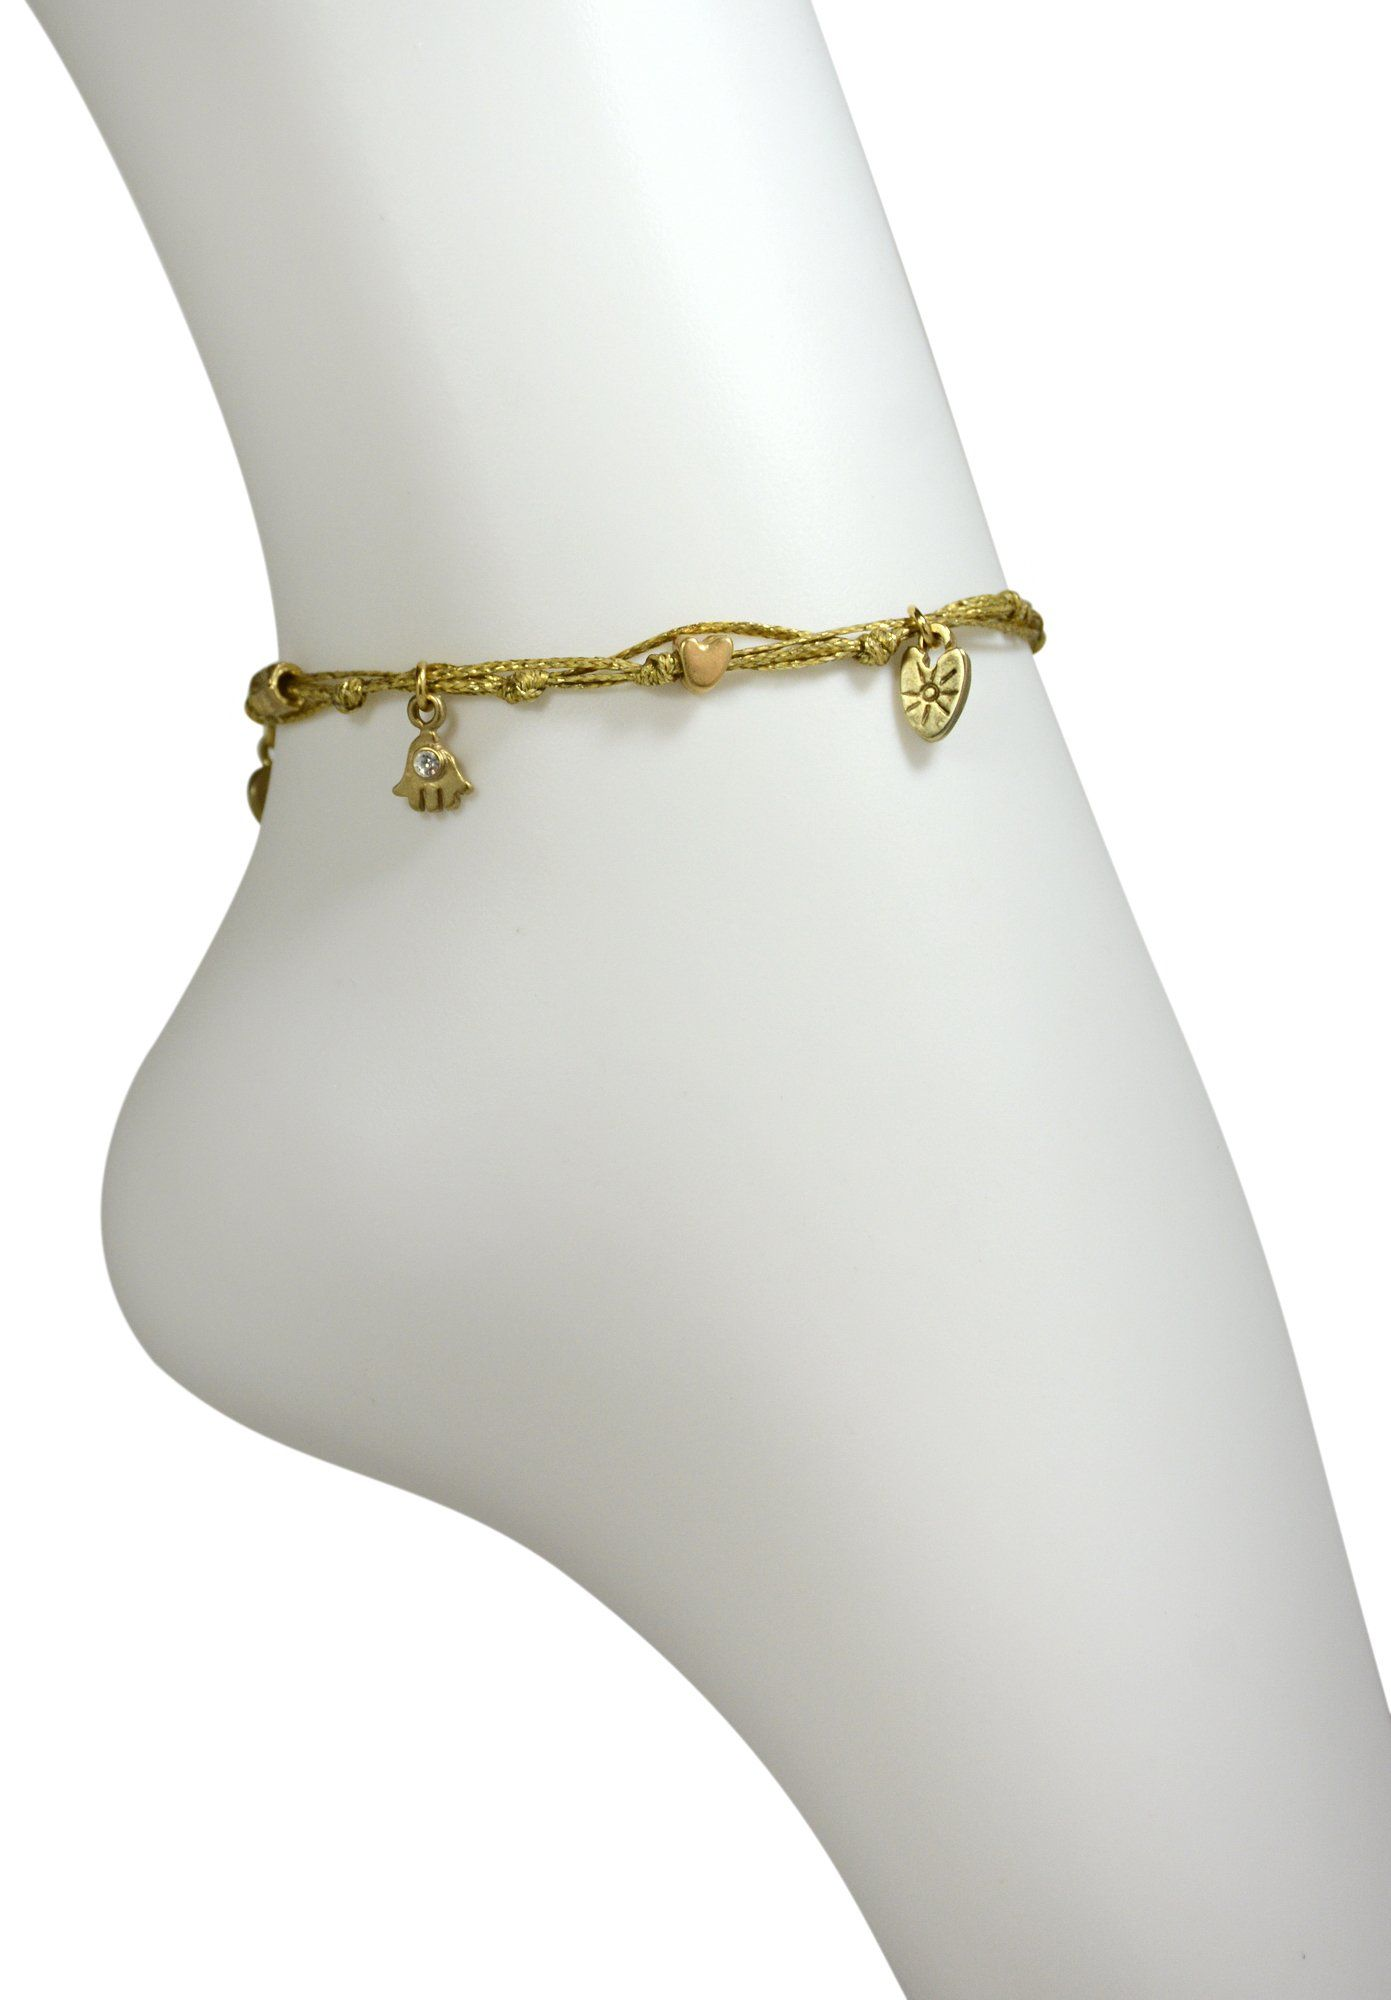 gold anklet overstock rose product shipping jewelry ankle black bracelet today watches free hills